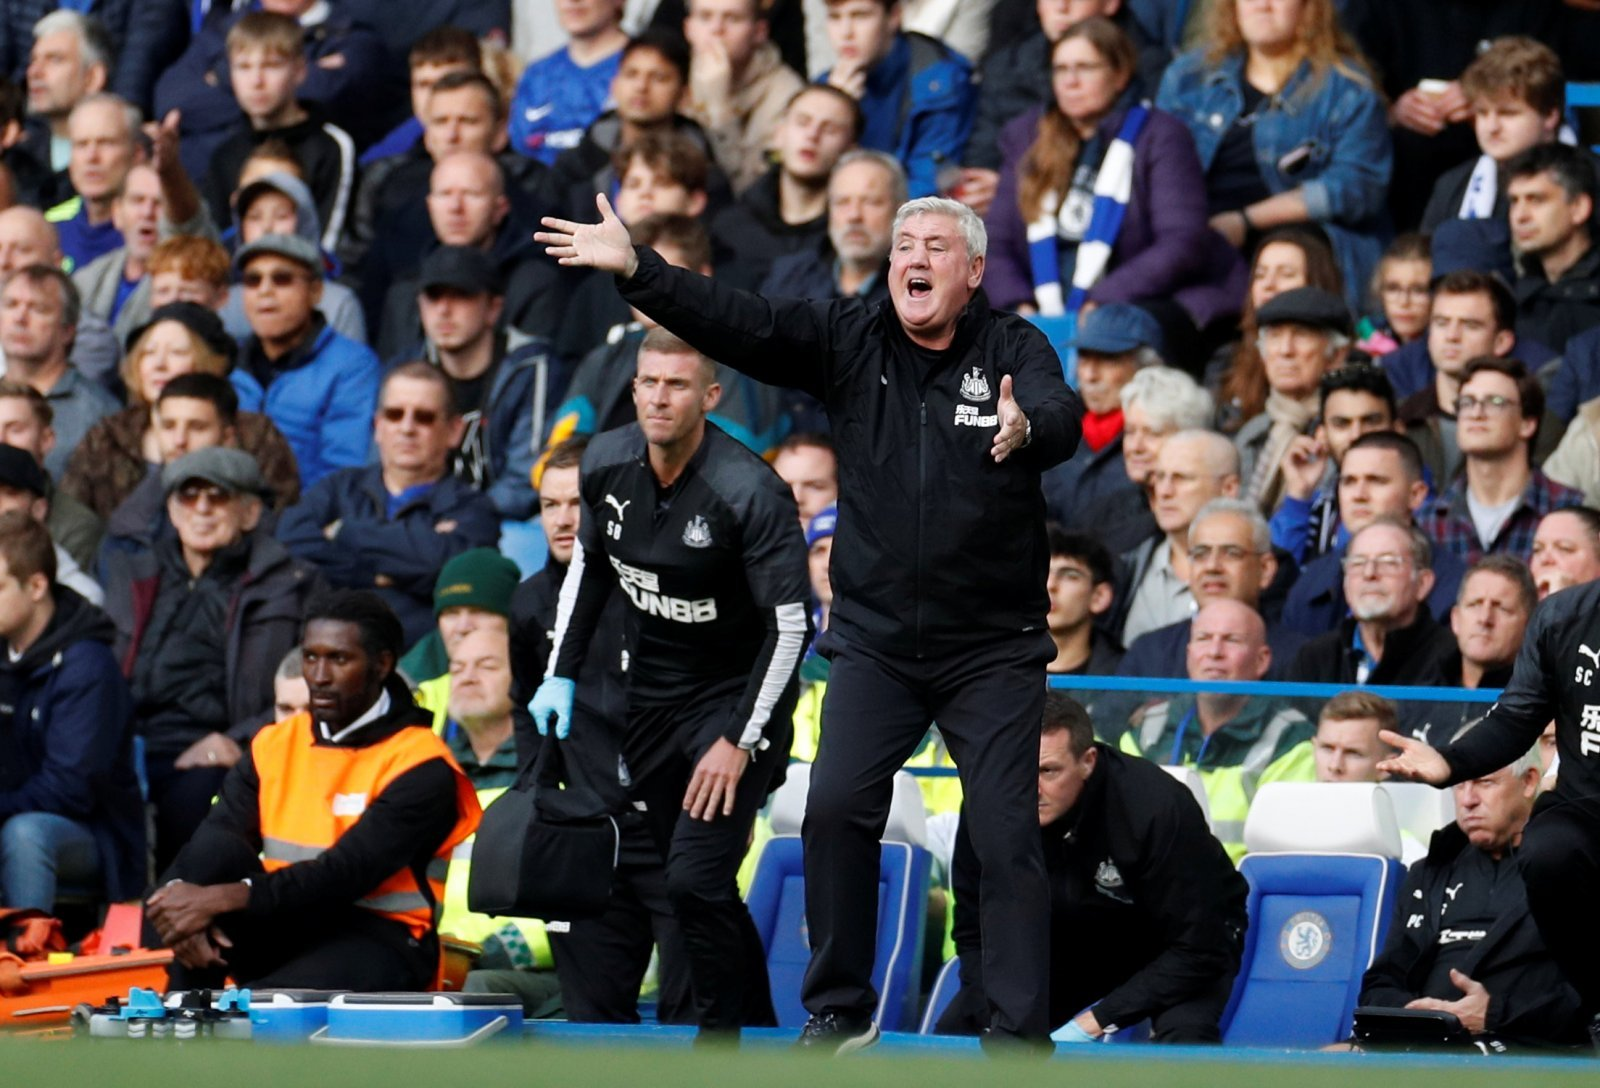 Newcastle United: Fans react negatively to Steve Bruce's comments about run of fixtures